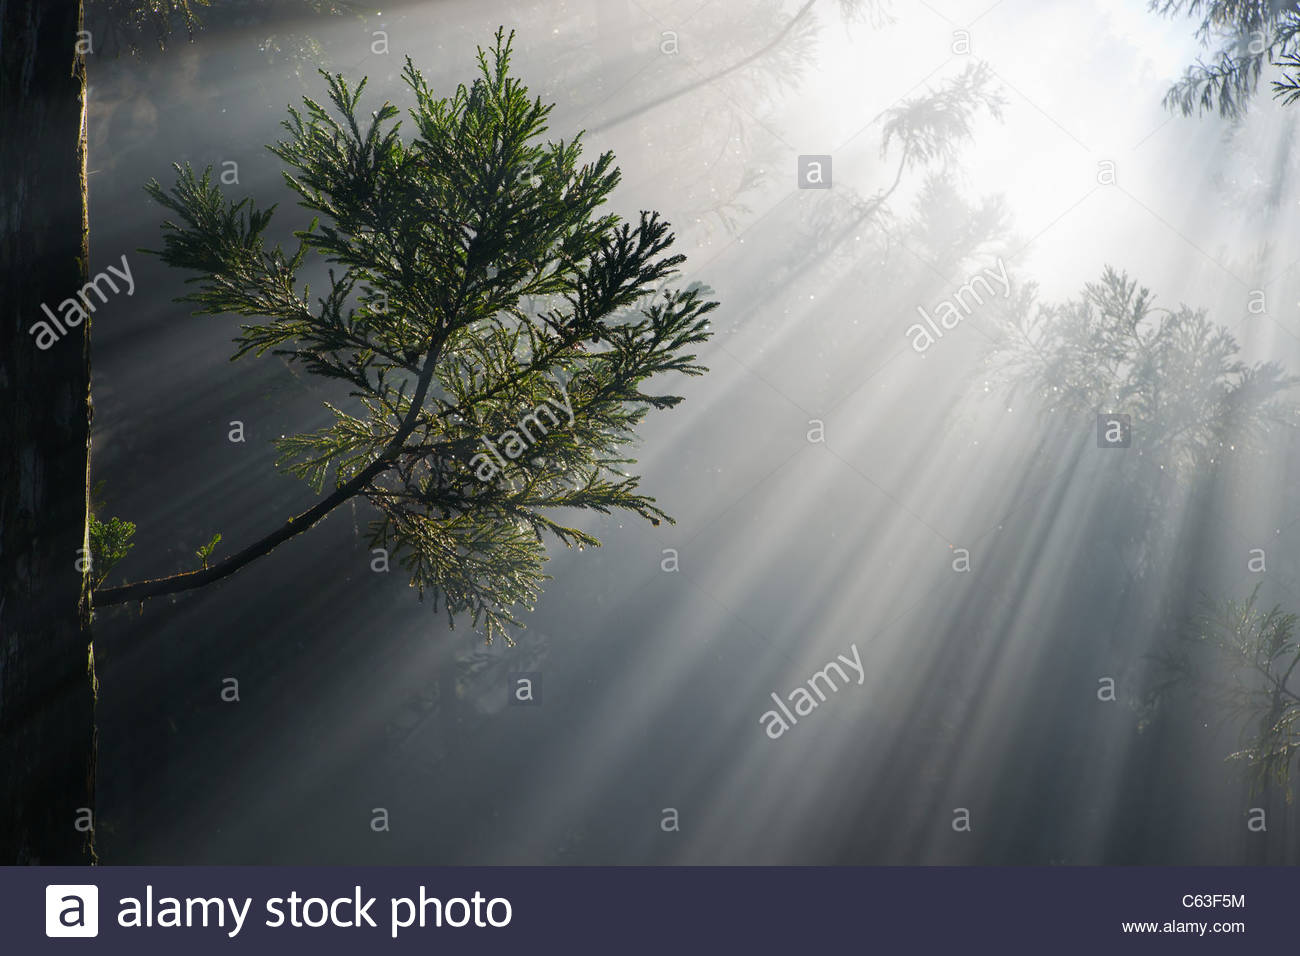 Morning mist and sunbeams through Reunion island's cryptomeria forest symbolizing photosynthesis - Stock Image